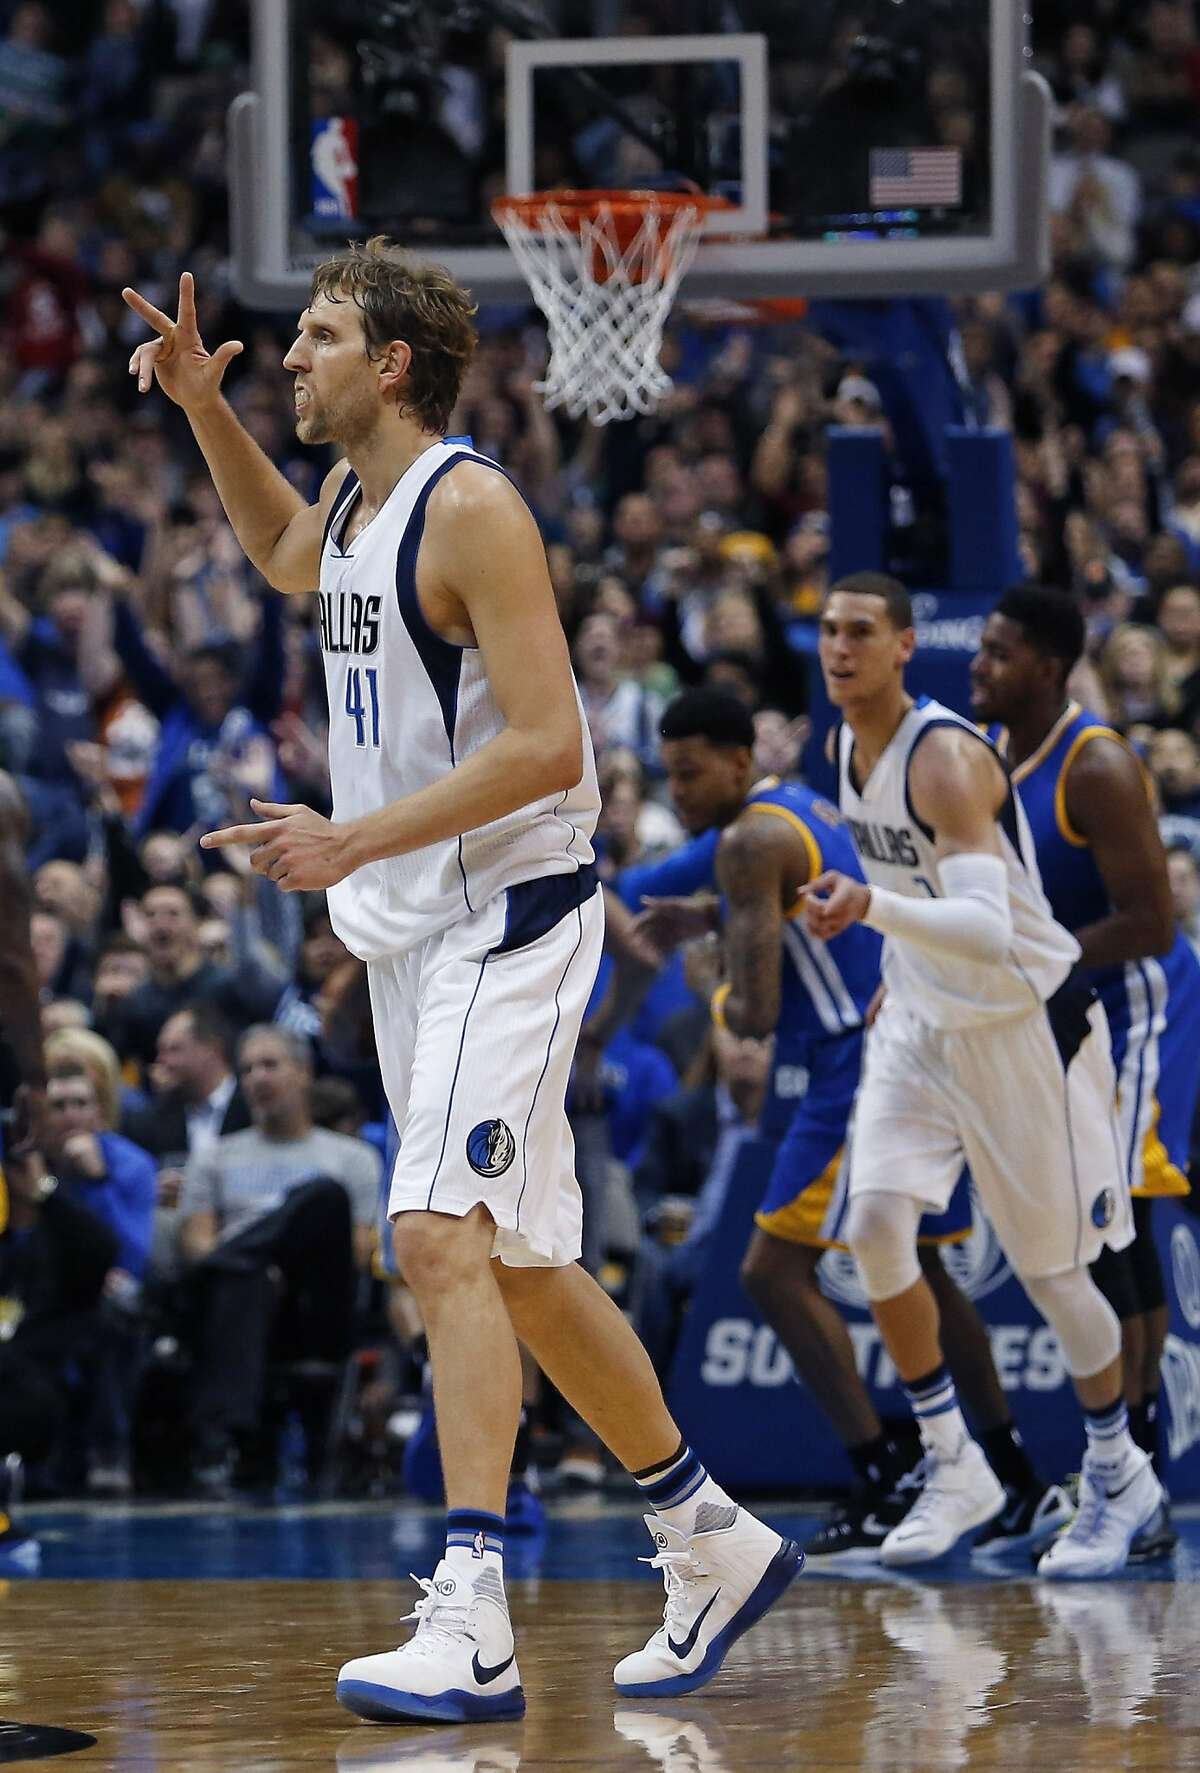 The Dallas Mavericks' Dirk Nowitzki (41) reacts after sinking a three-point shot in the fourth quarter against the Golden State Warriors at the American Airlines Center in Dallas on Wednesday, Dec. 30, 2015. The Mavs won, 114-91.